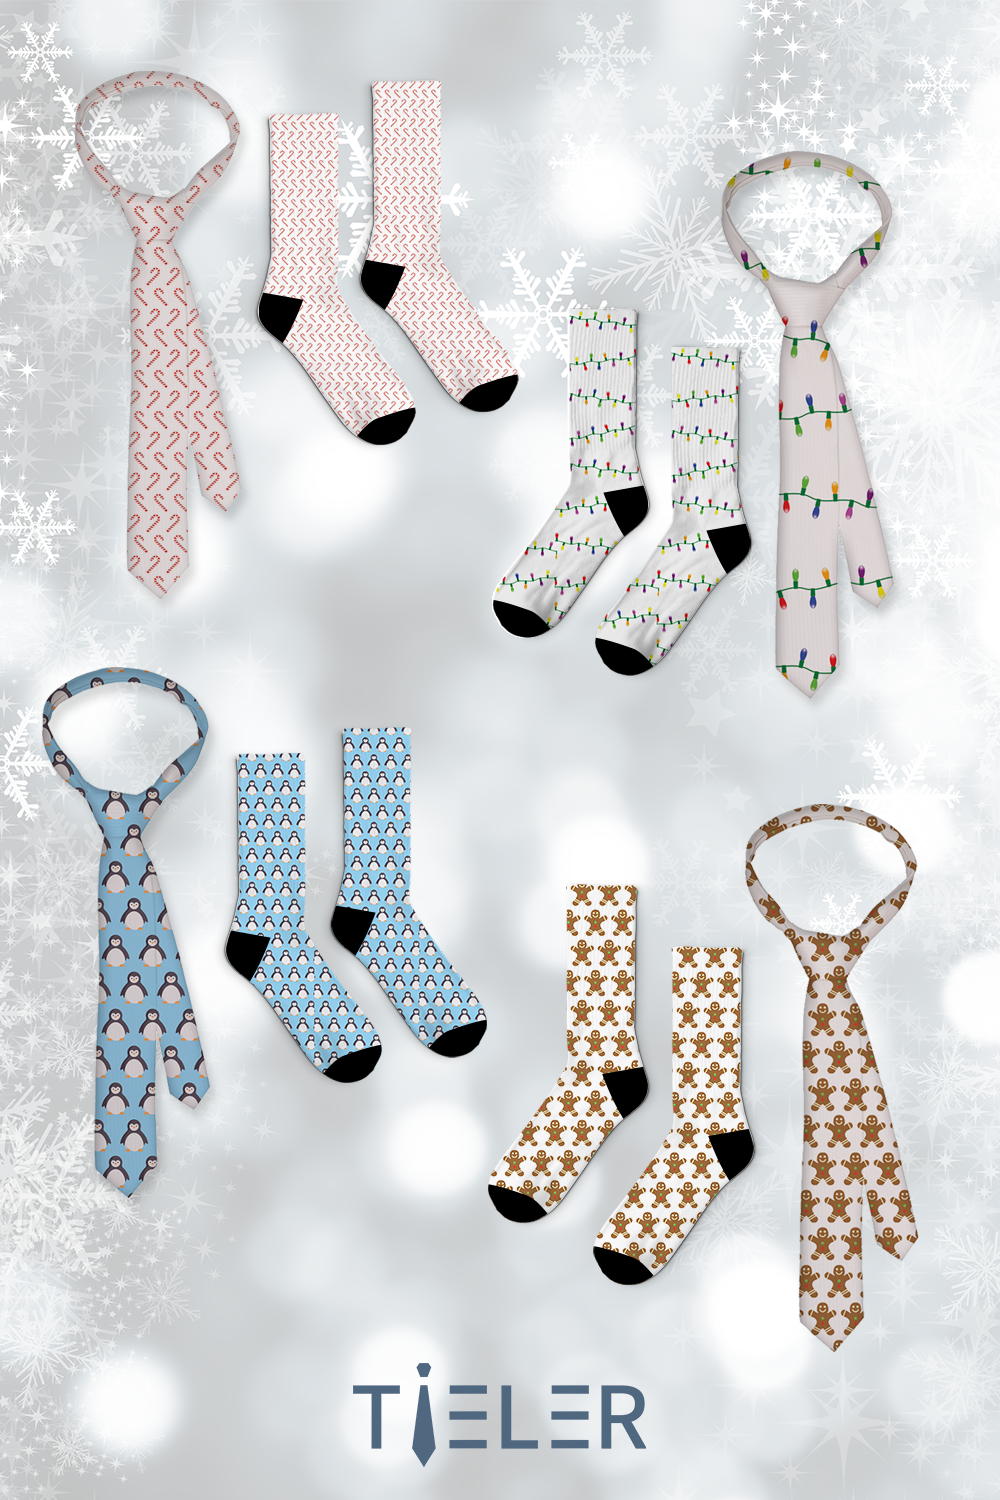 Check out all our fun Christmas ties and accessories on ...